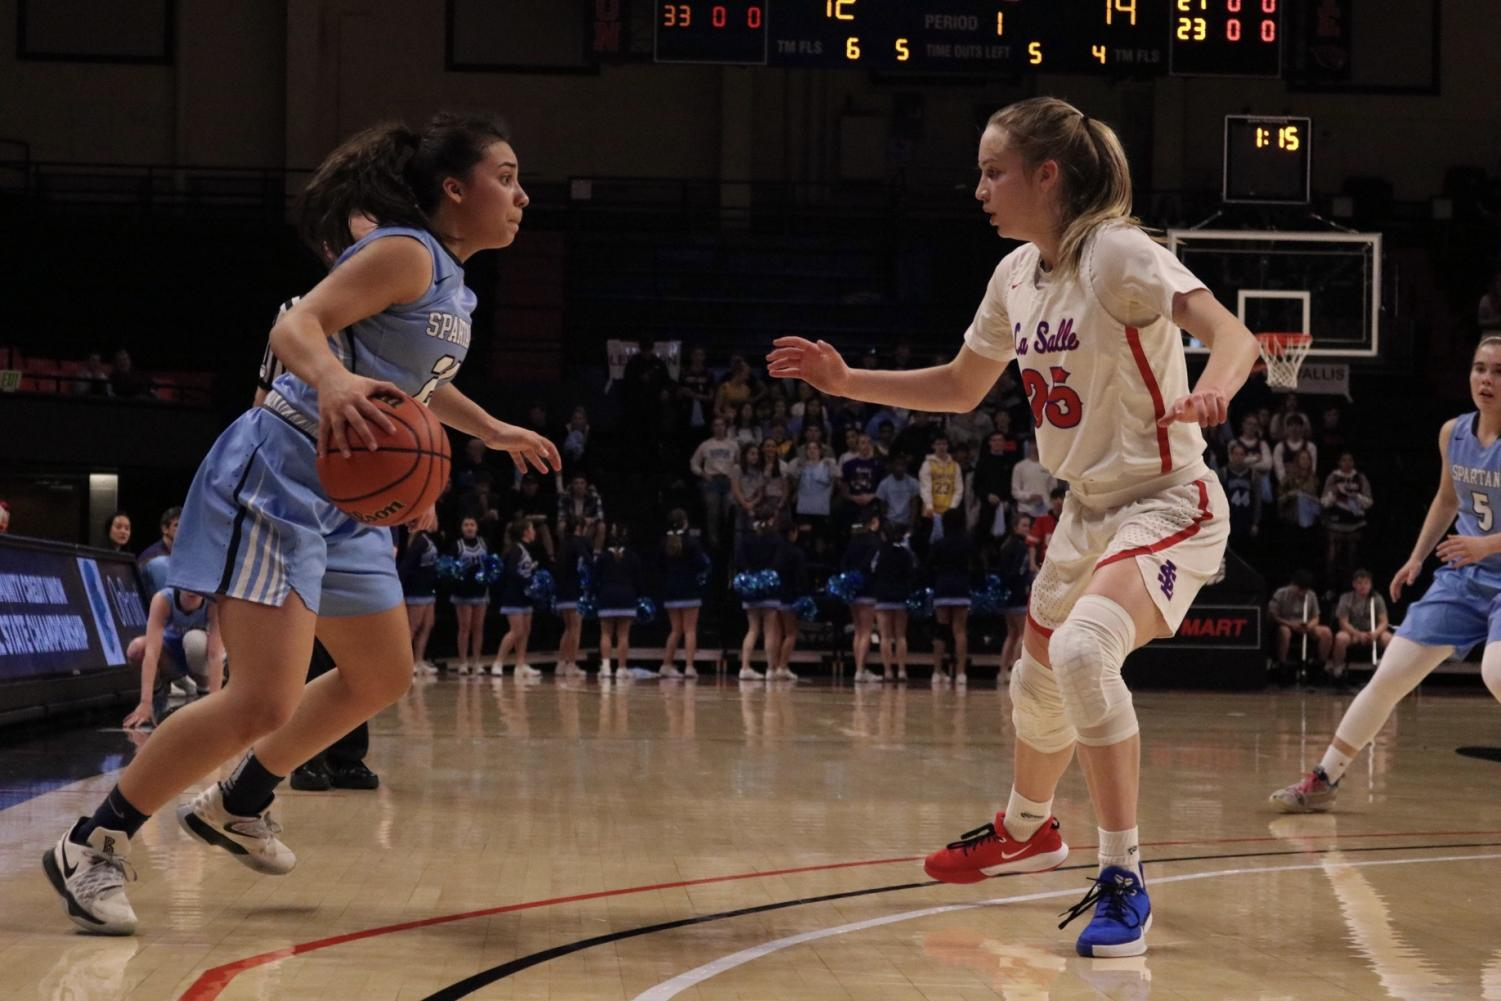 Freshman+Rhyan+Mogel+scored+23+points%2C+seven+boards%2C+two+assists%2C+two+blocks%2C+and+one+steal.